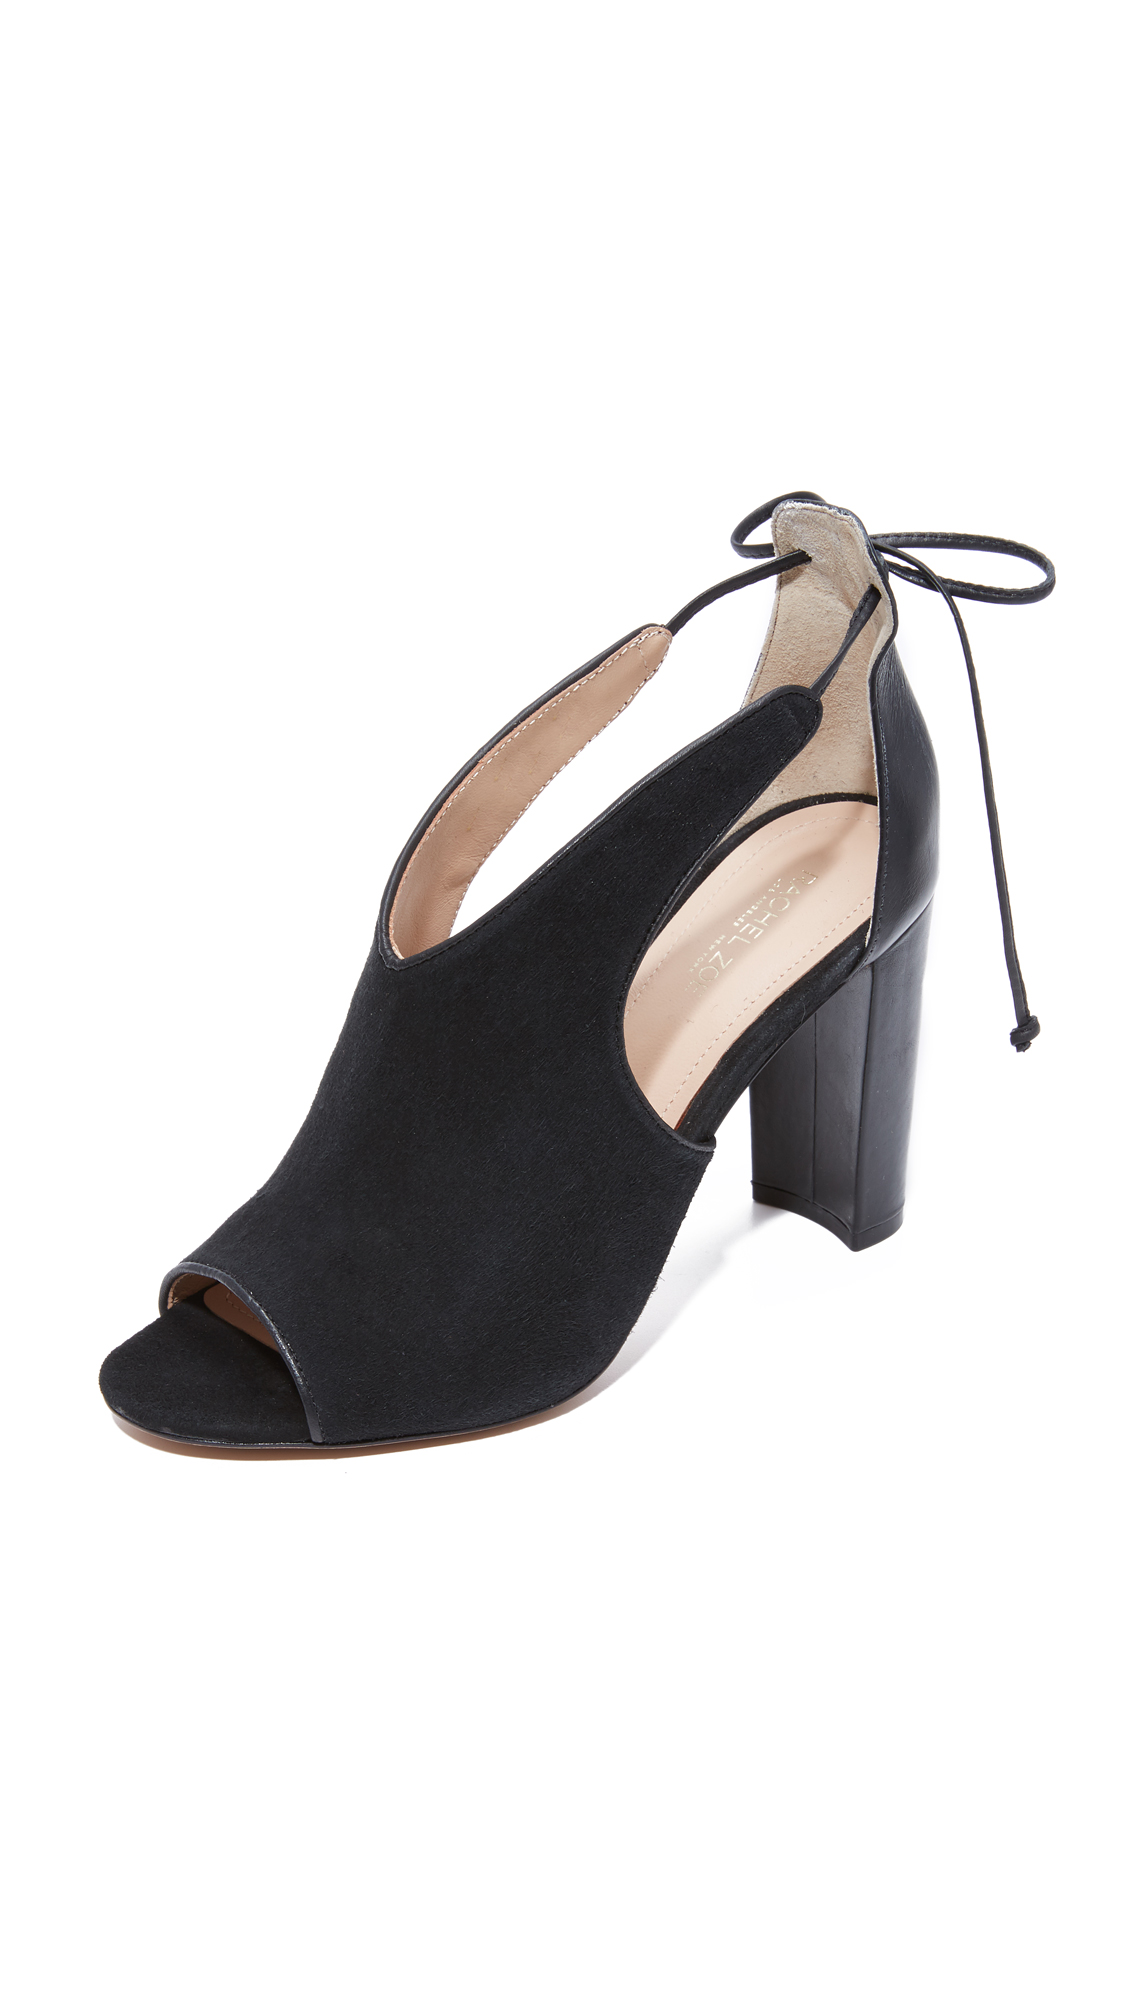 Rachel Zoe Stephanie Peep Toe Booties - Black